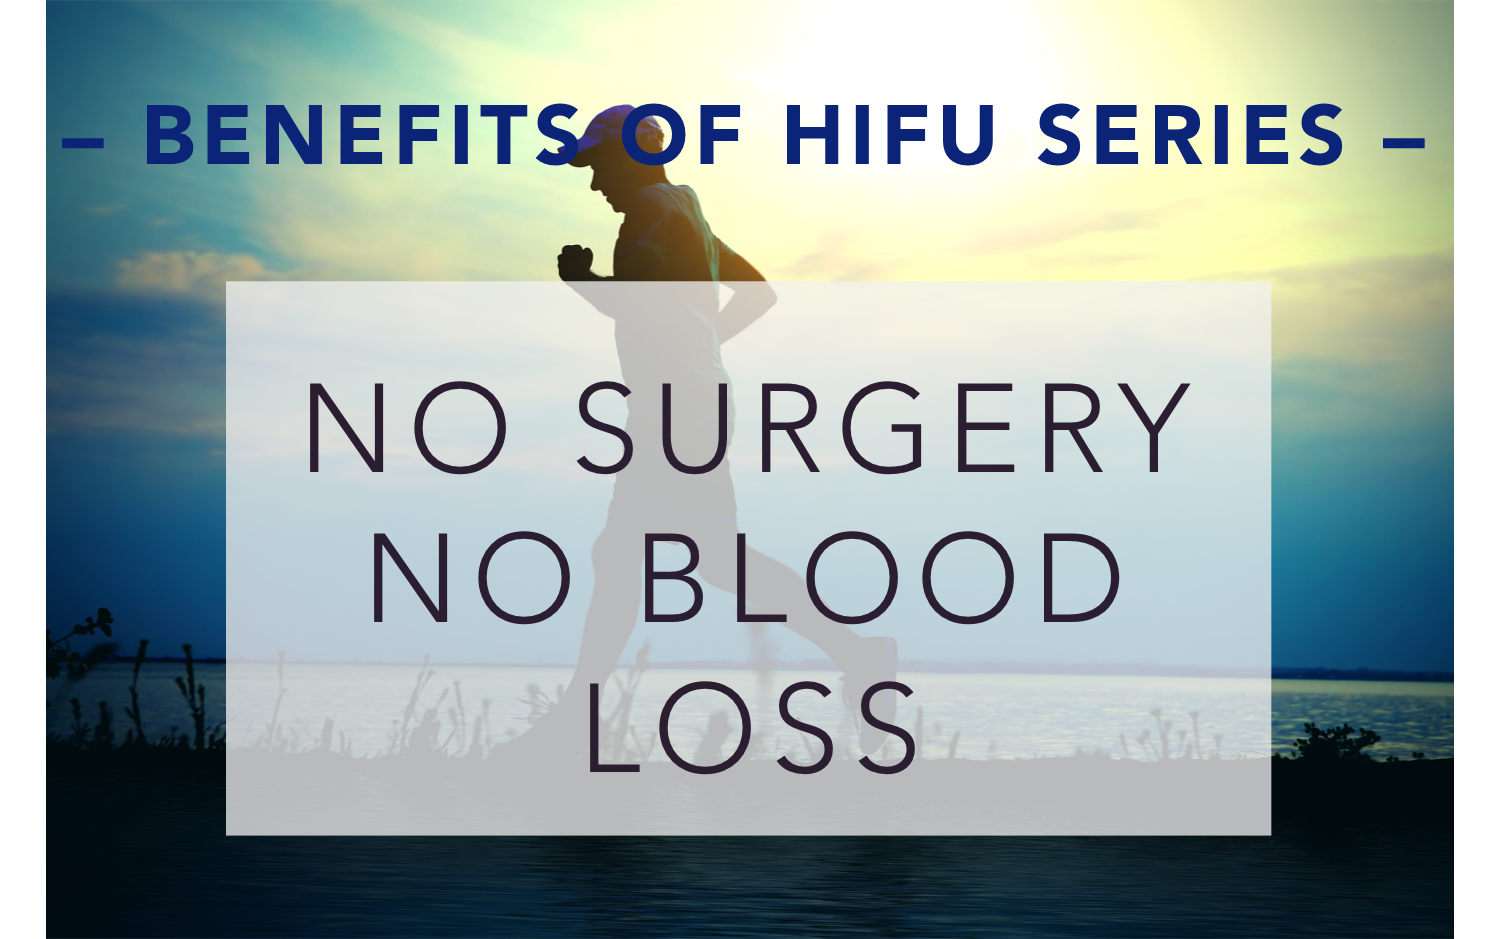 HIFU is non surgical treatment for prostate cancer with no blood loss.